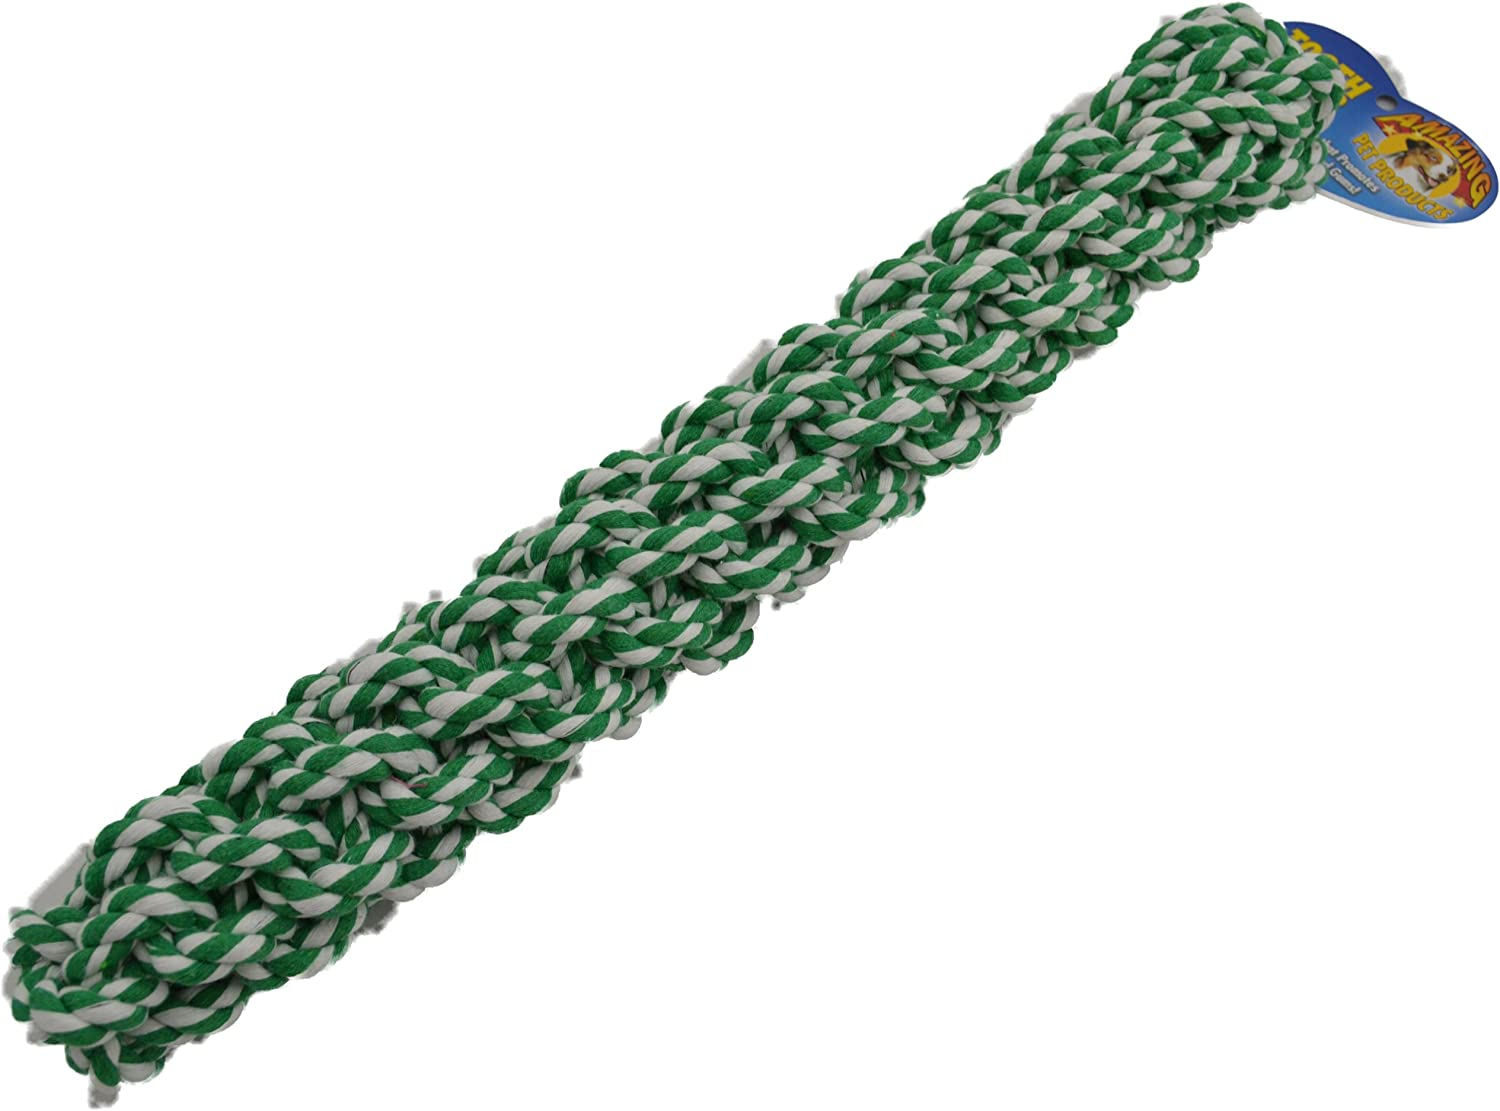 Amazing Pet Products Retriever Rope Dog Toy, 16Inch, Green